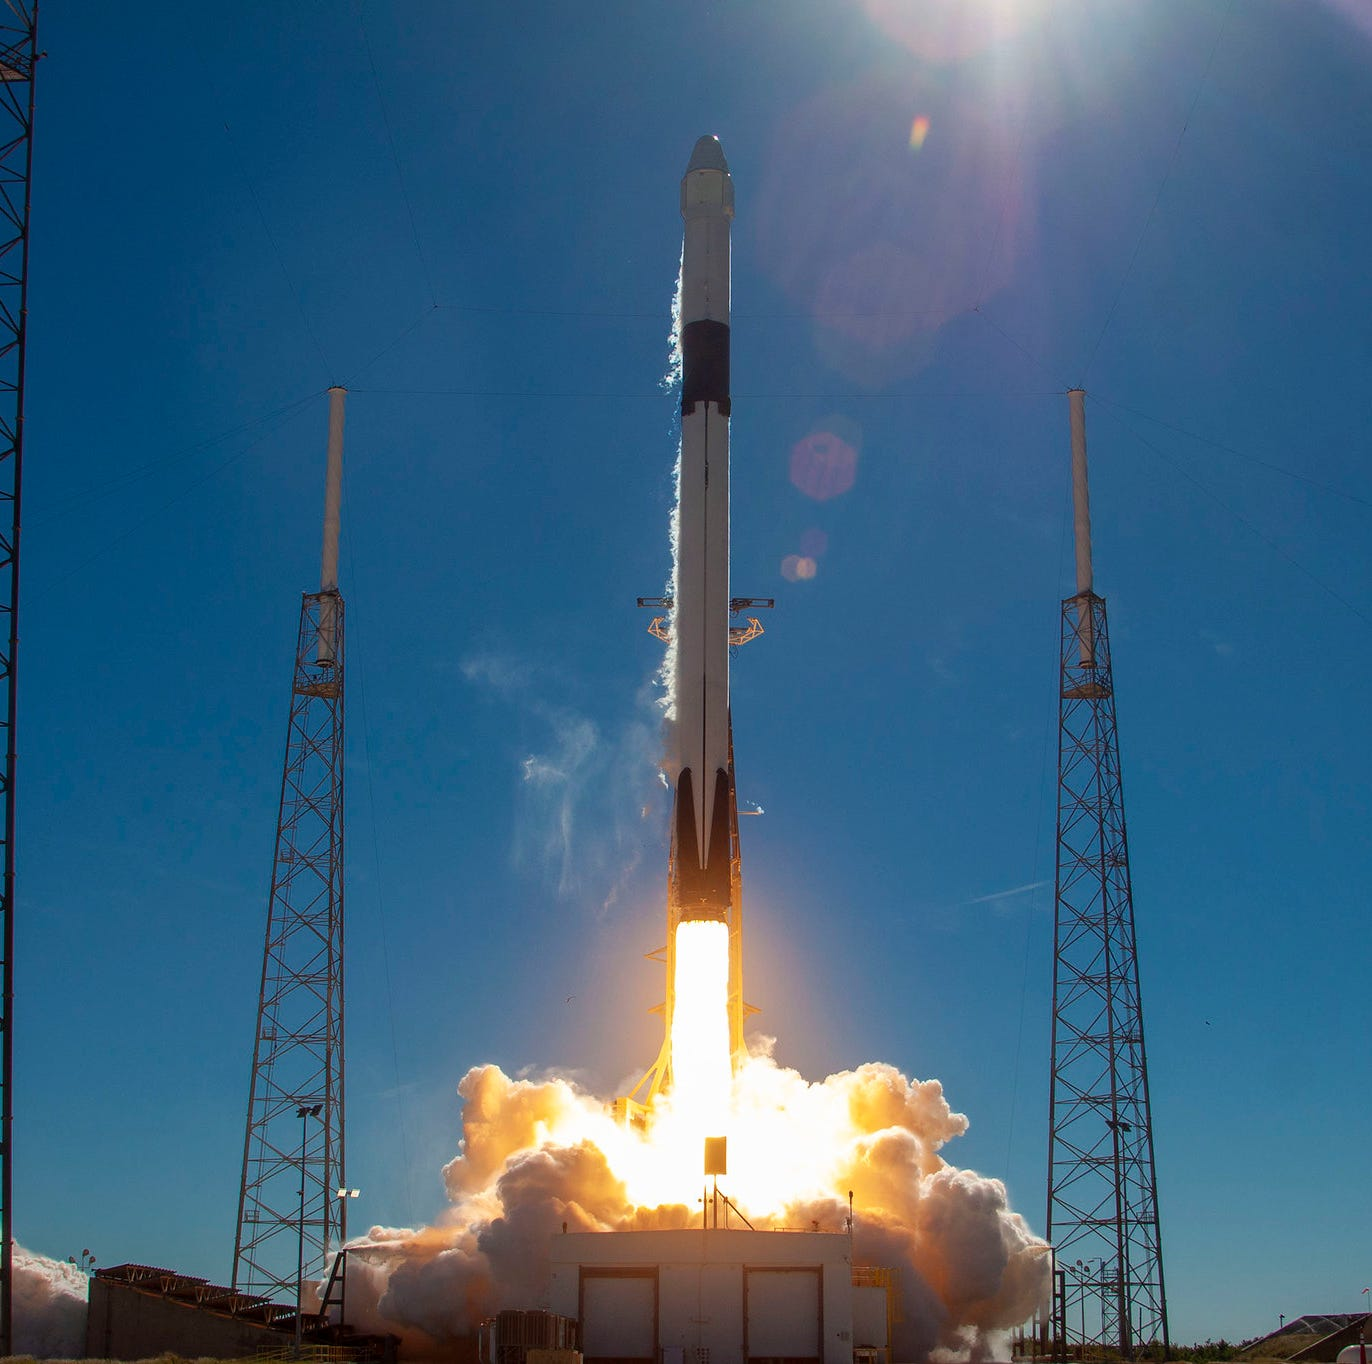 NASA: Next SpaceX launch of ISS cargo still scheduled for next week